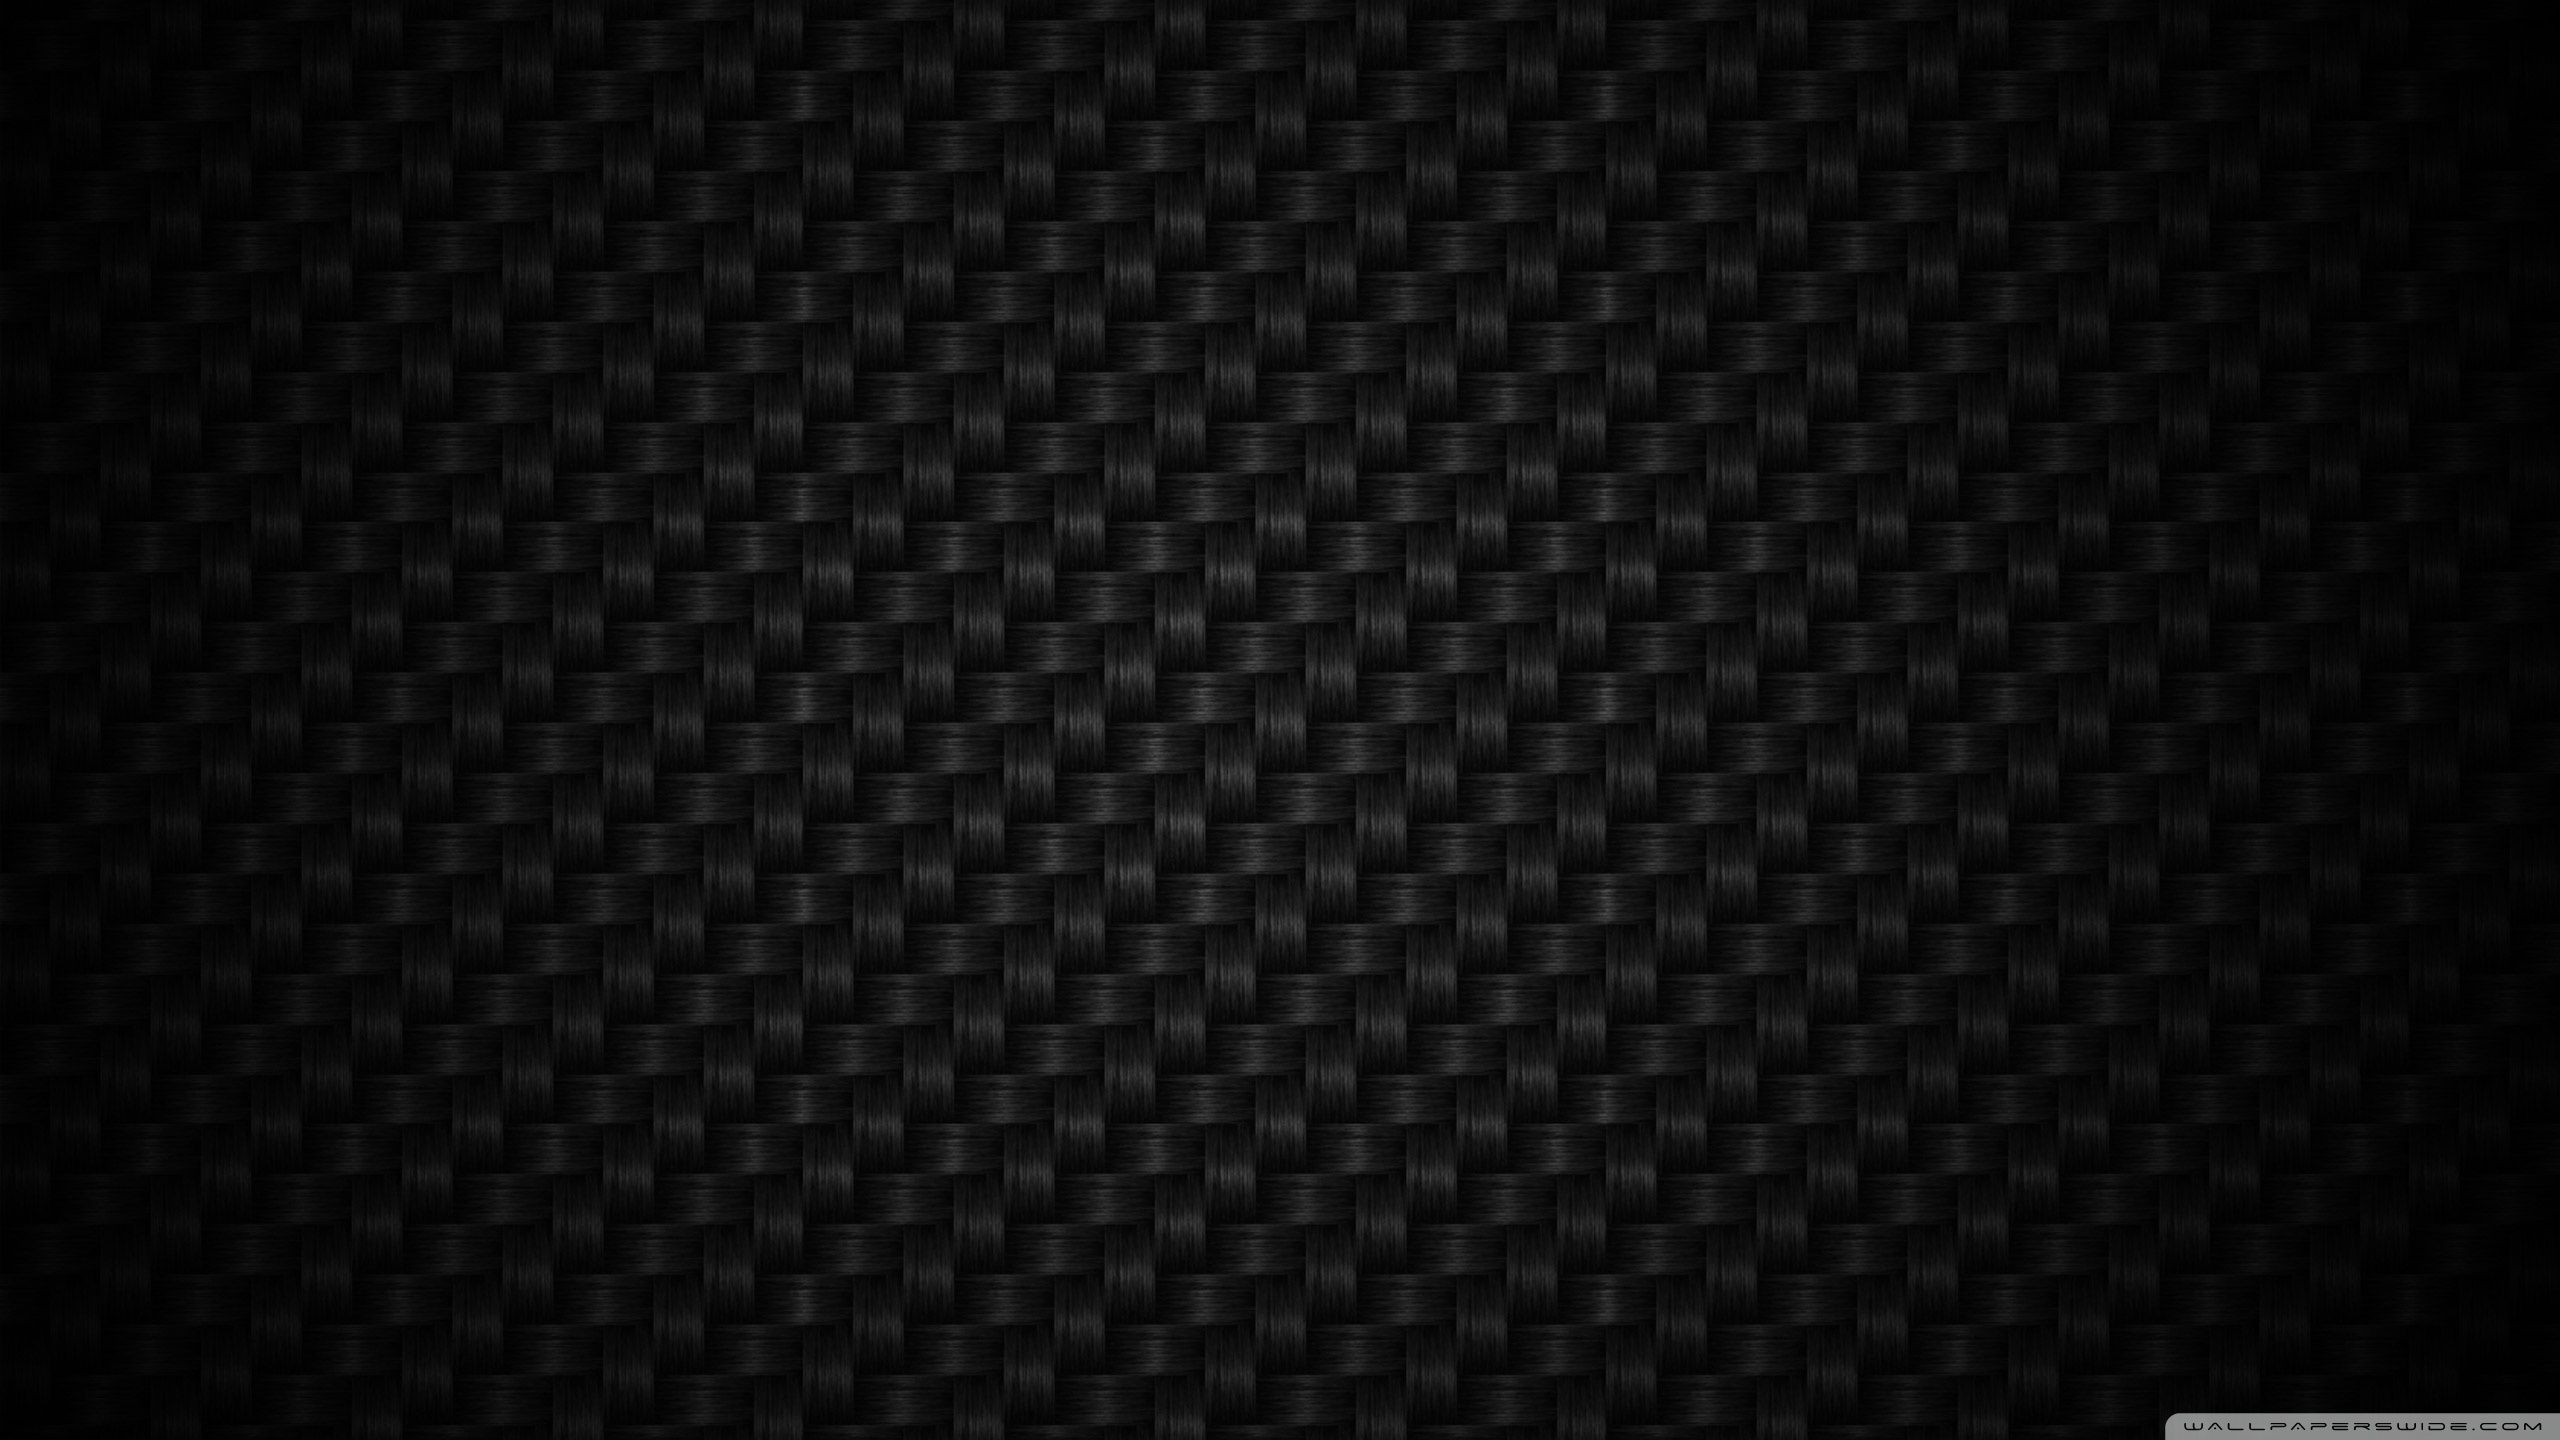 2560x1440 Black Wallpapers Top Free 2560x1440 Black Backgrounds Wallpaperaccess